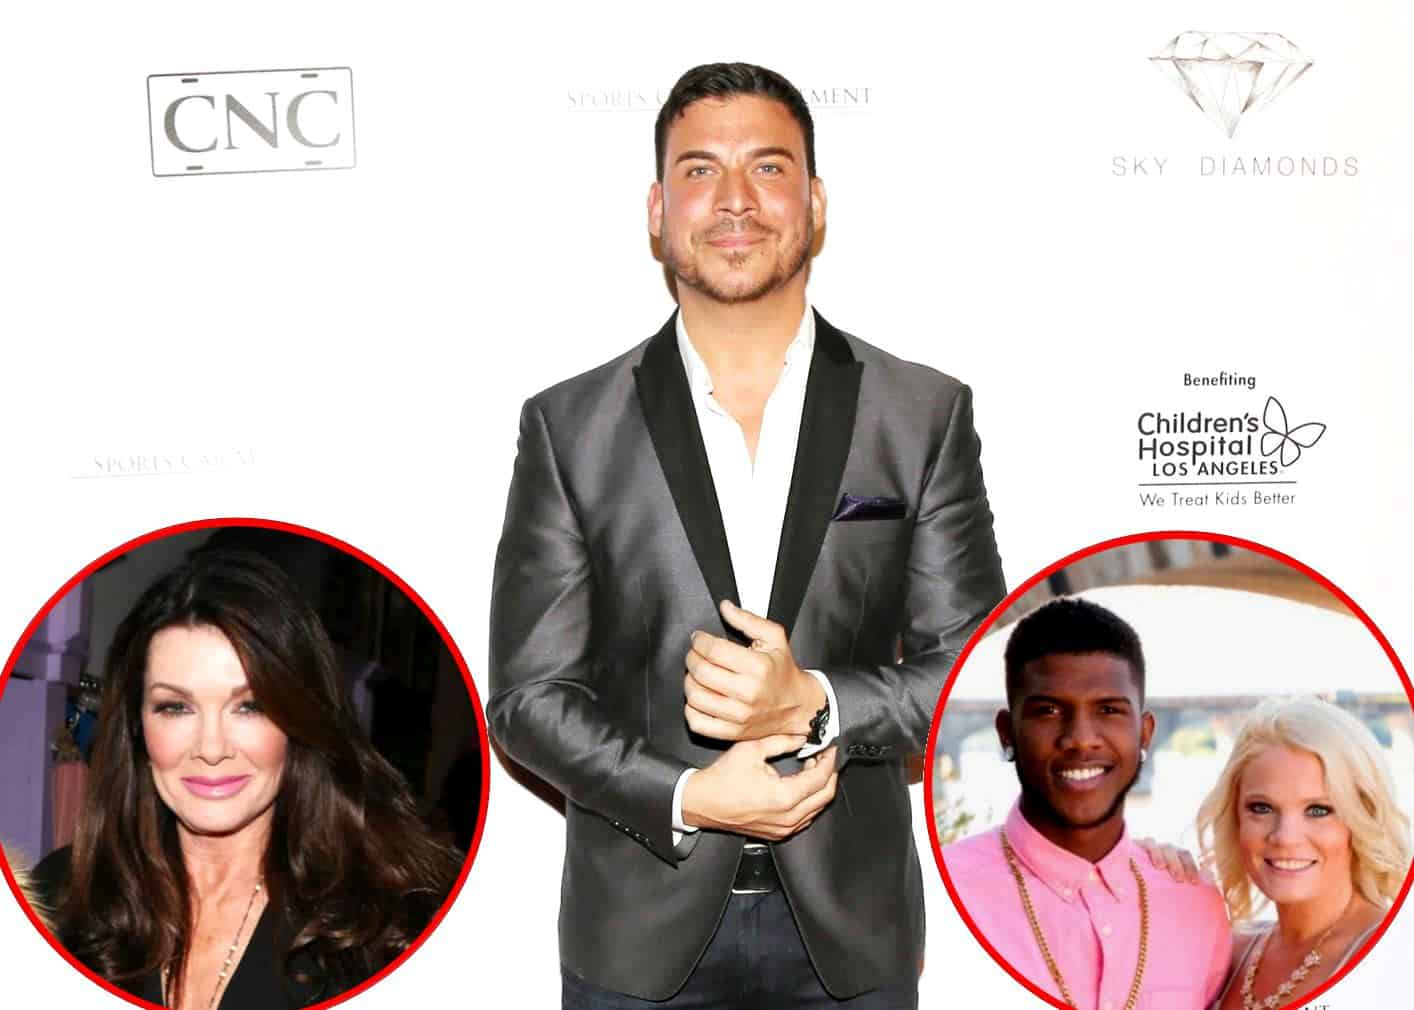 Jax Taylor plus Lisa Vanderpump and 90 Day Fiance cast